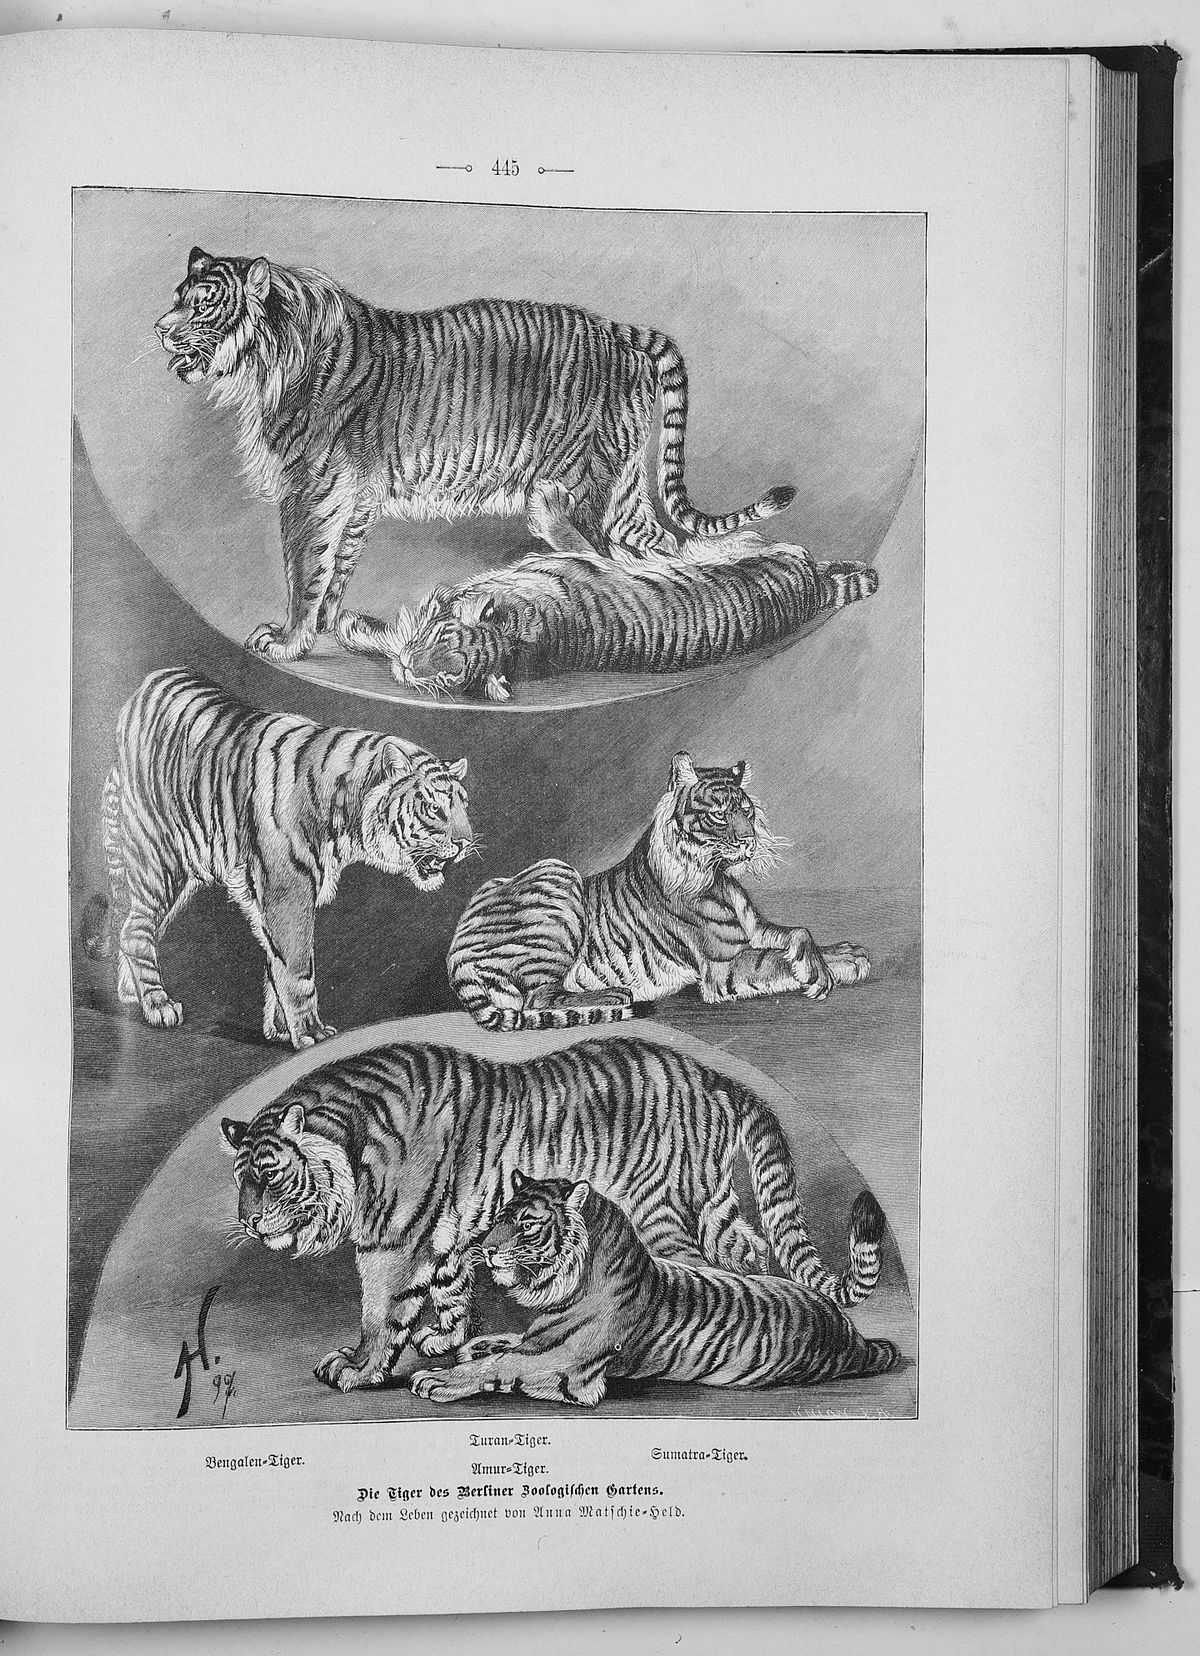 Siberian Tiger Introduction Project - Wikipedia